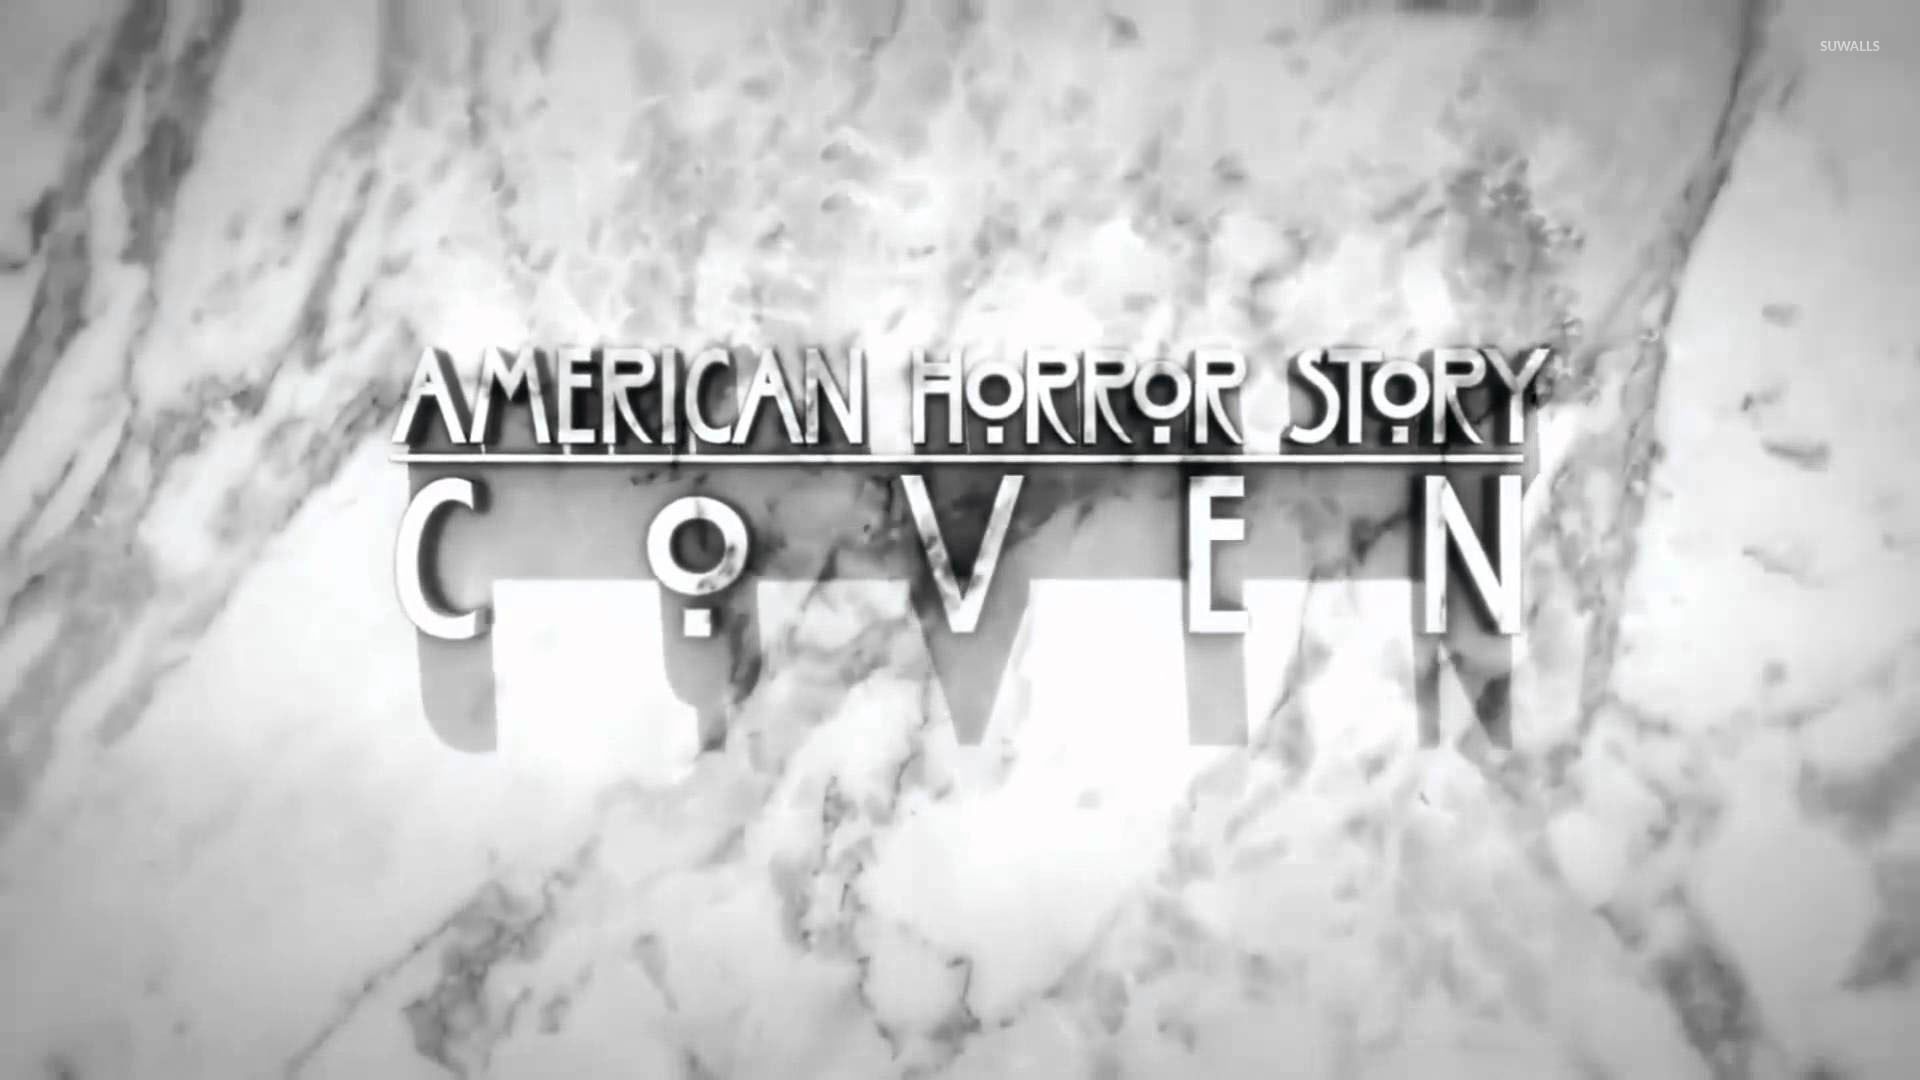 American Horror Story Coven Wallpaper Tv Show Wallpapers 27971